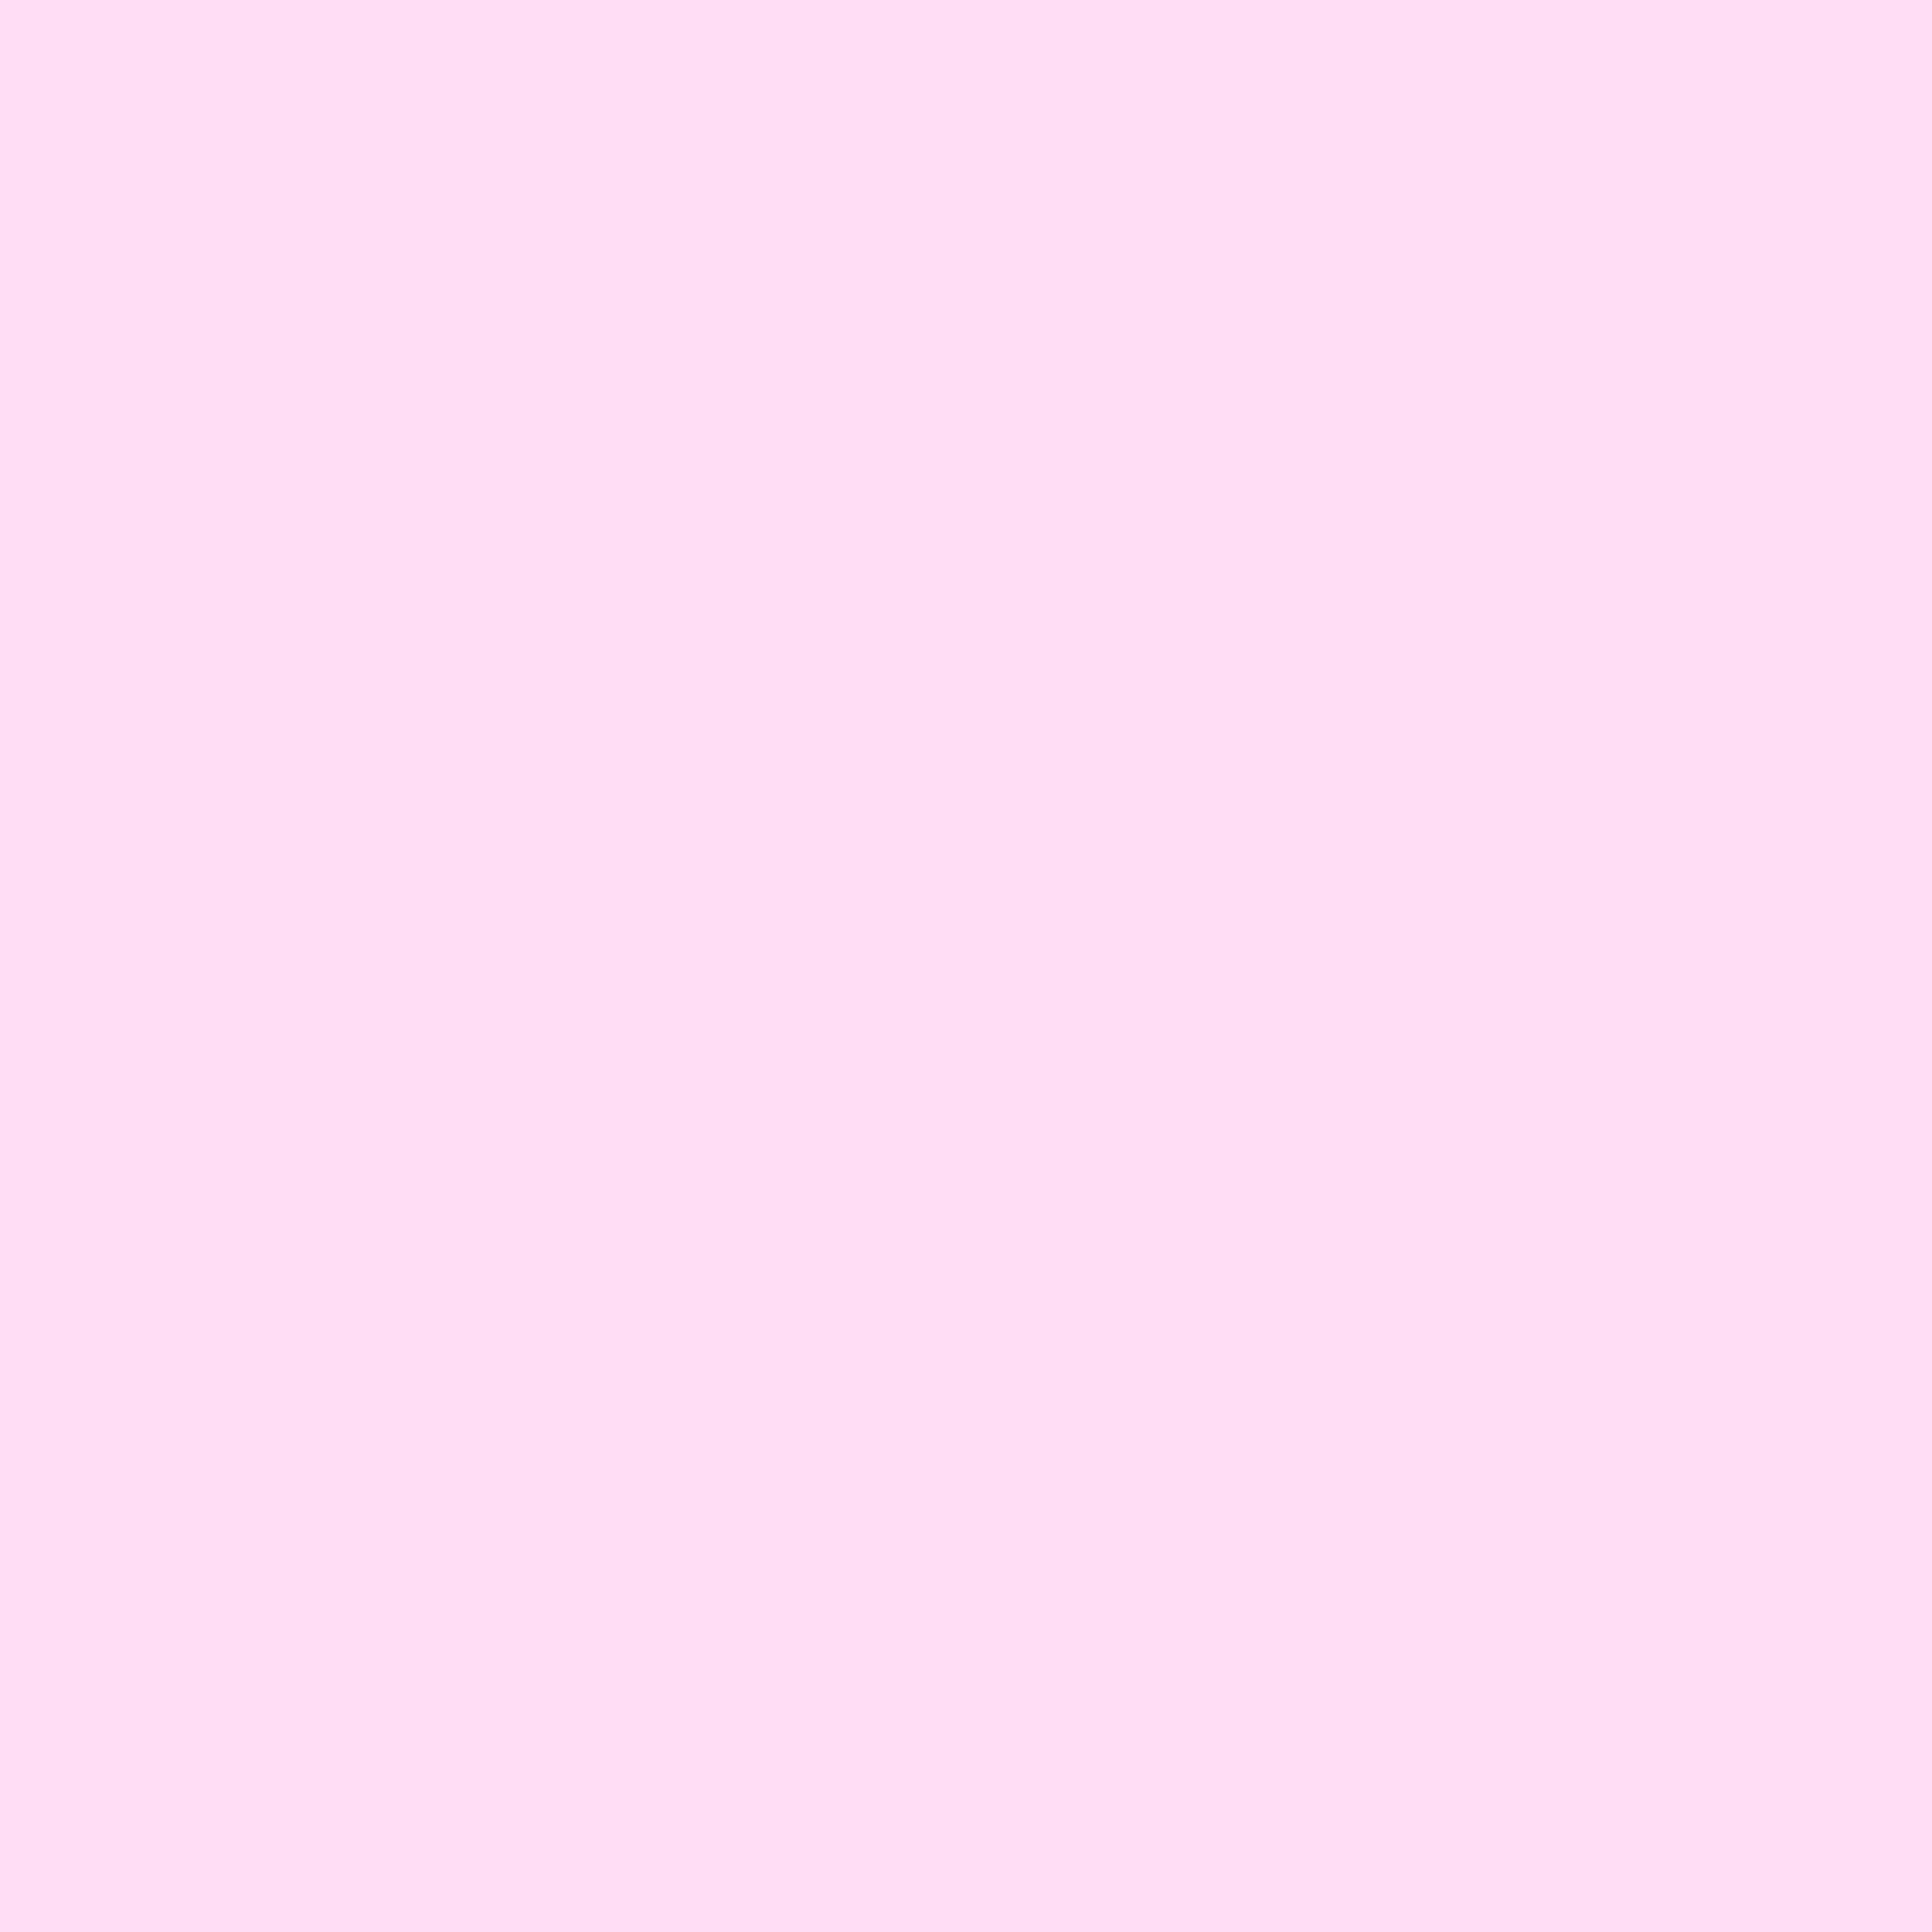 2048x2048 Pink Lace Solid Color Background